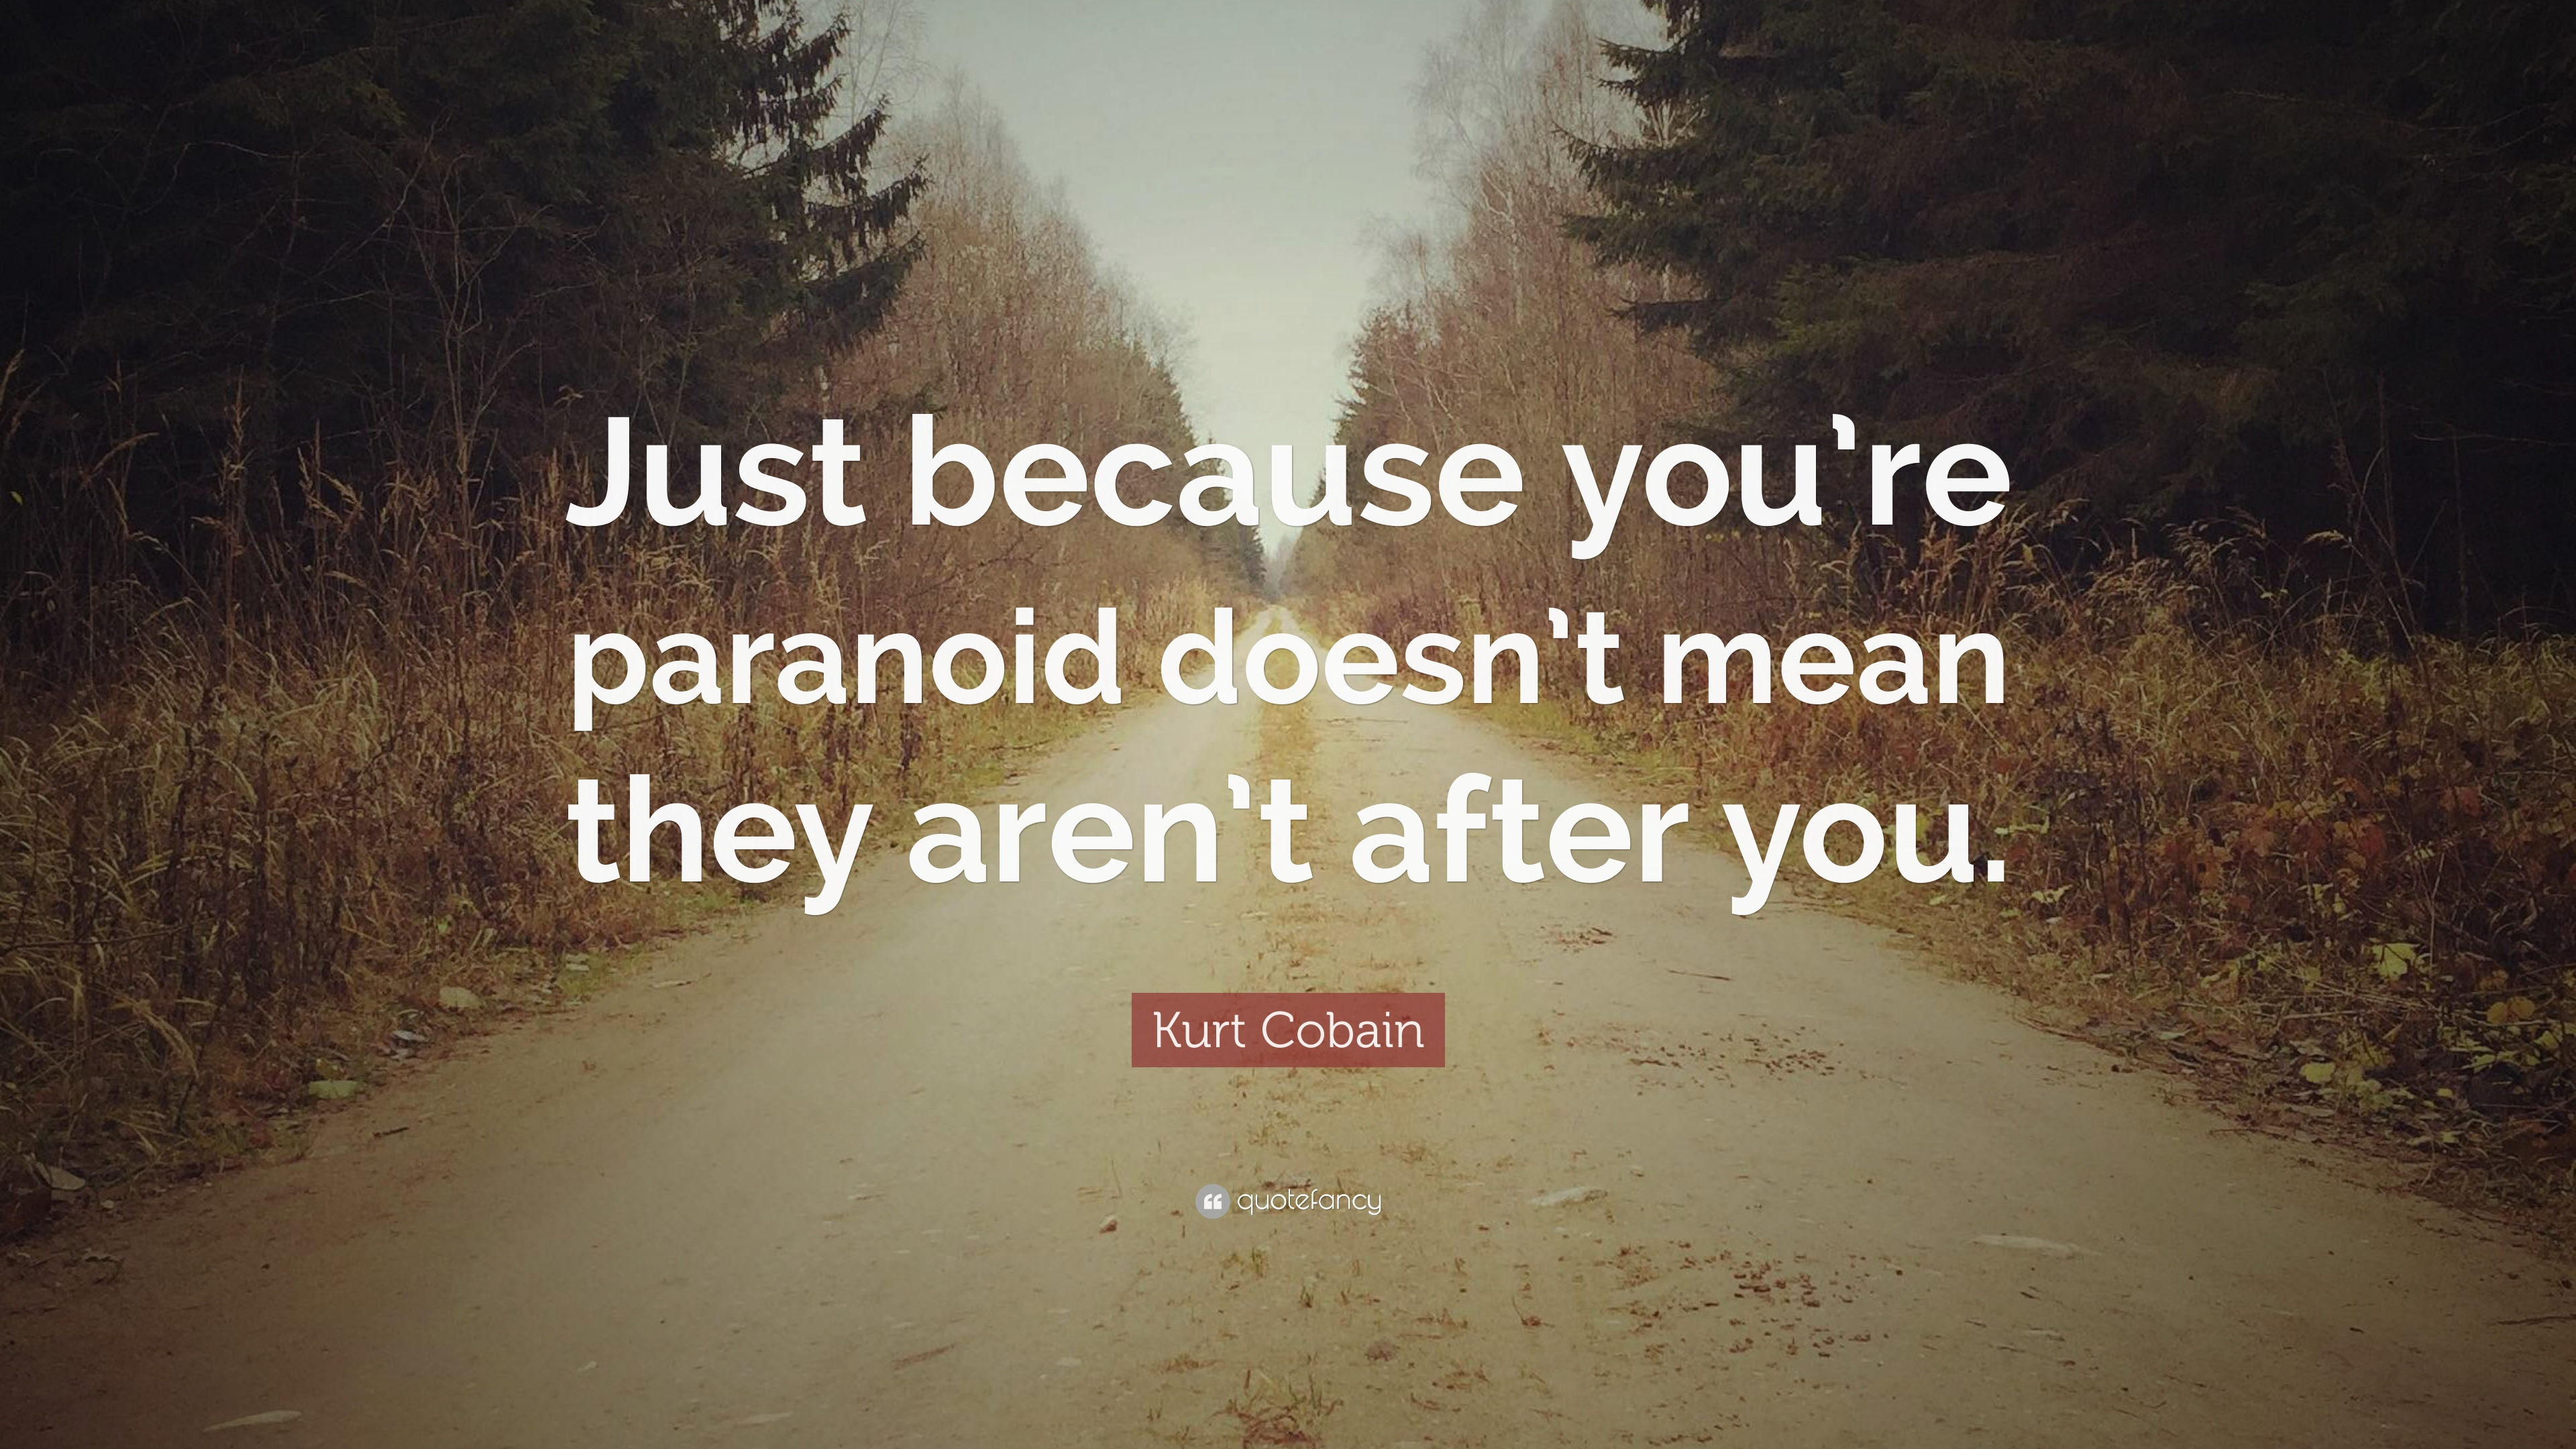 Kurt Cobain Quote Just Because Youre Paranoid Doesnt Mean They